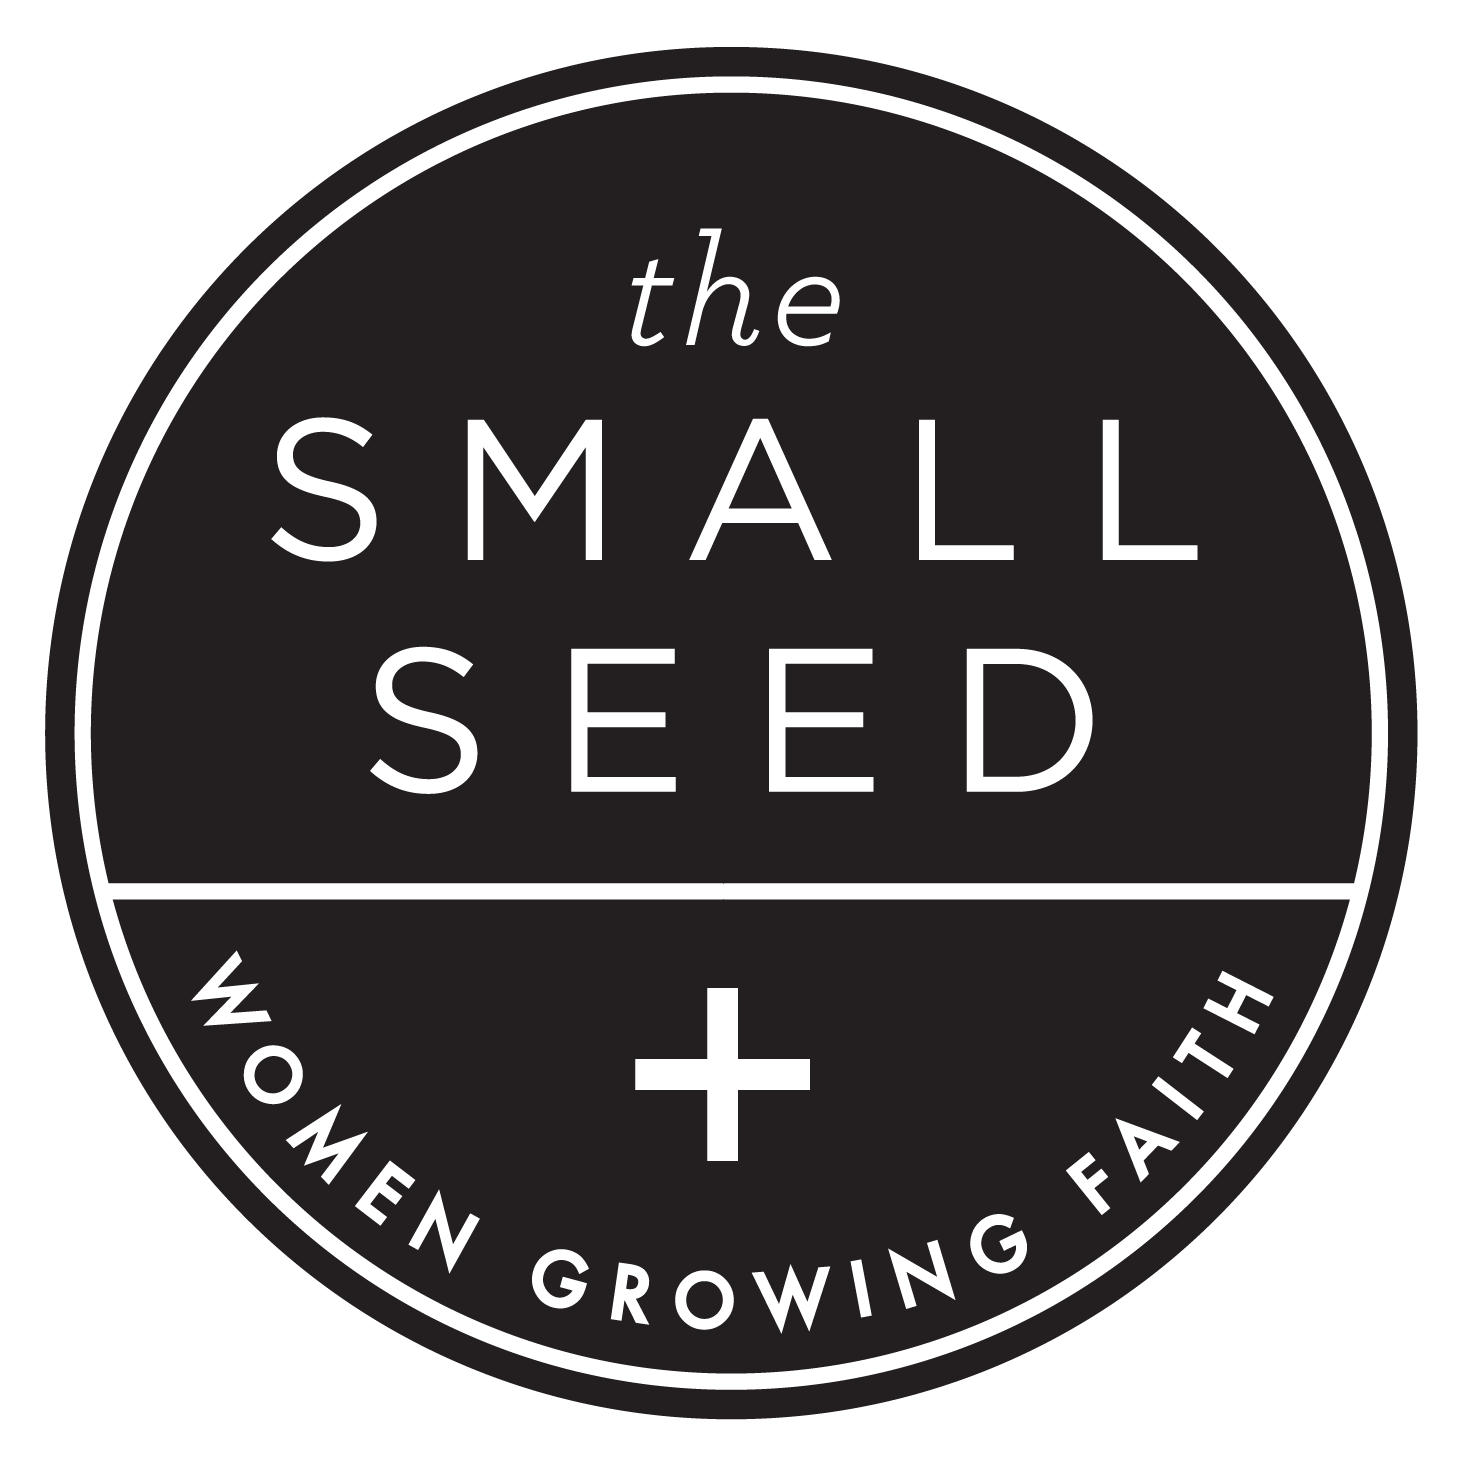 The Small Seed